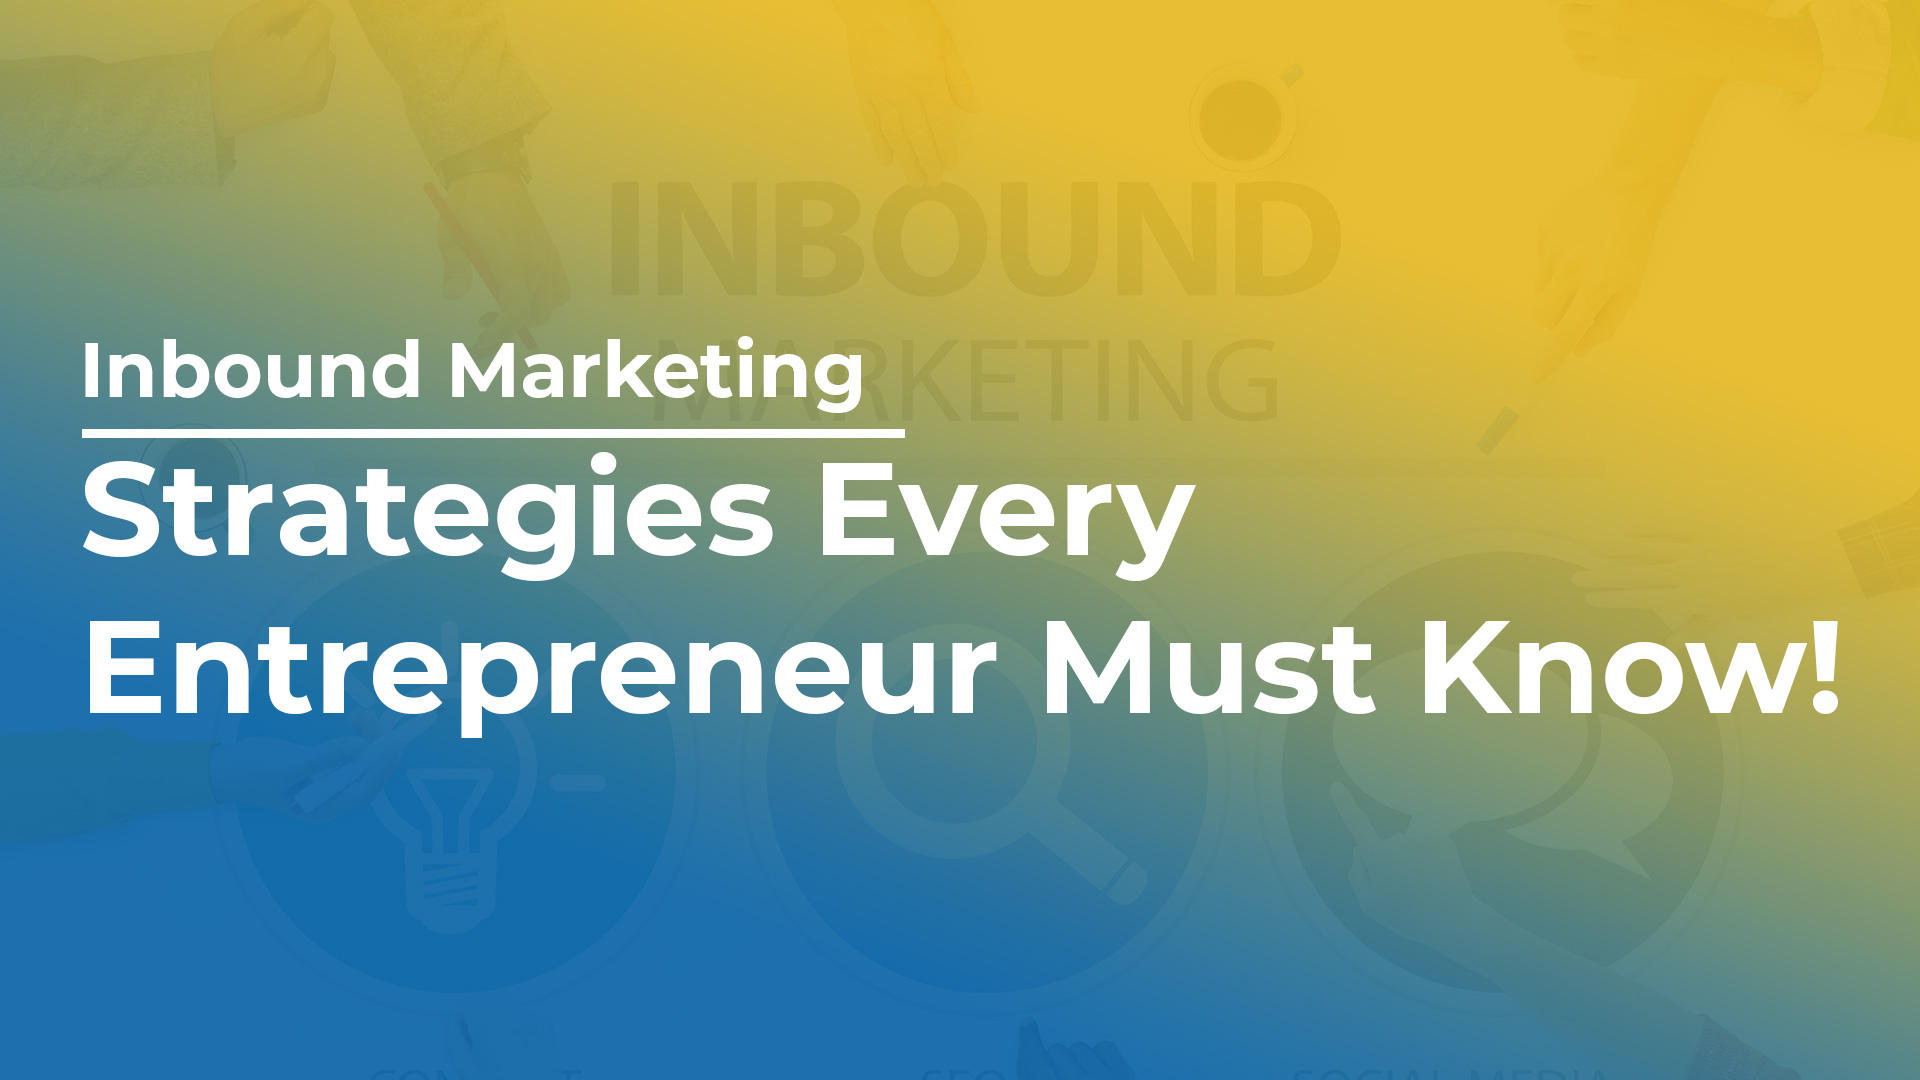 Inbound Marketing Strategies Every Entrepreneur Must Know